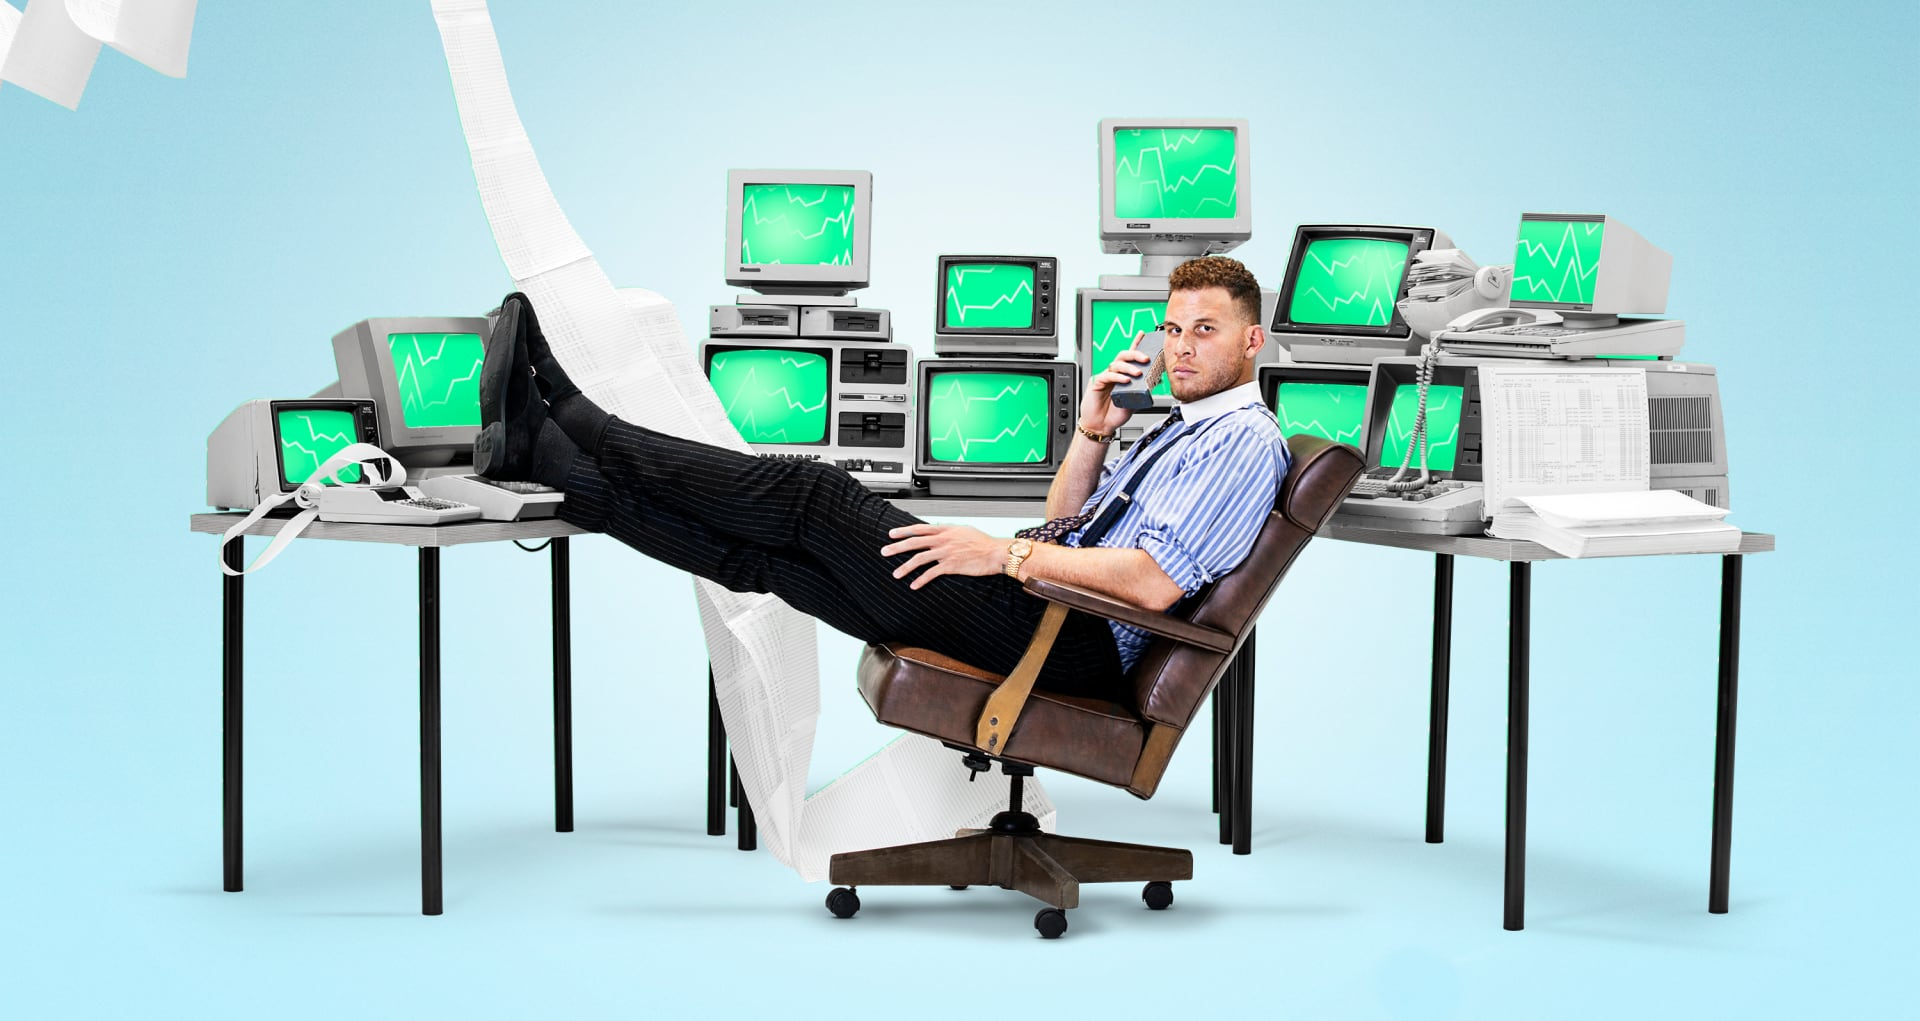 Blake Griffin sitting in a chair with many monitors behind him